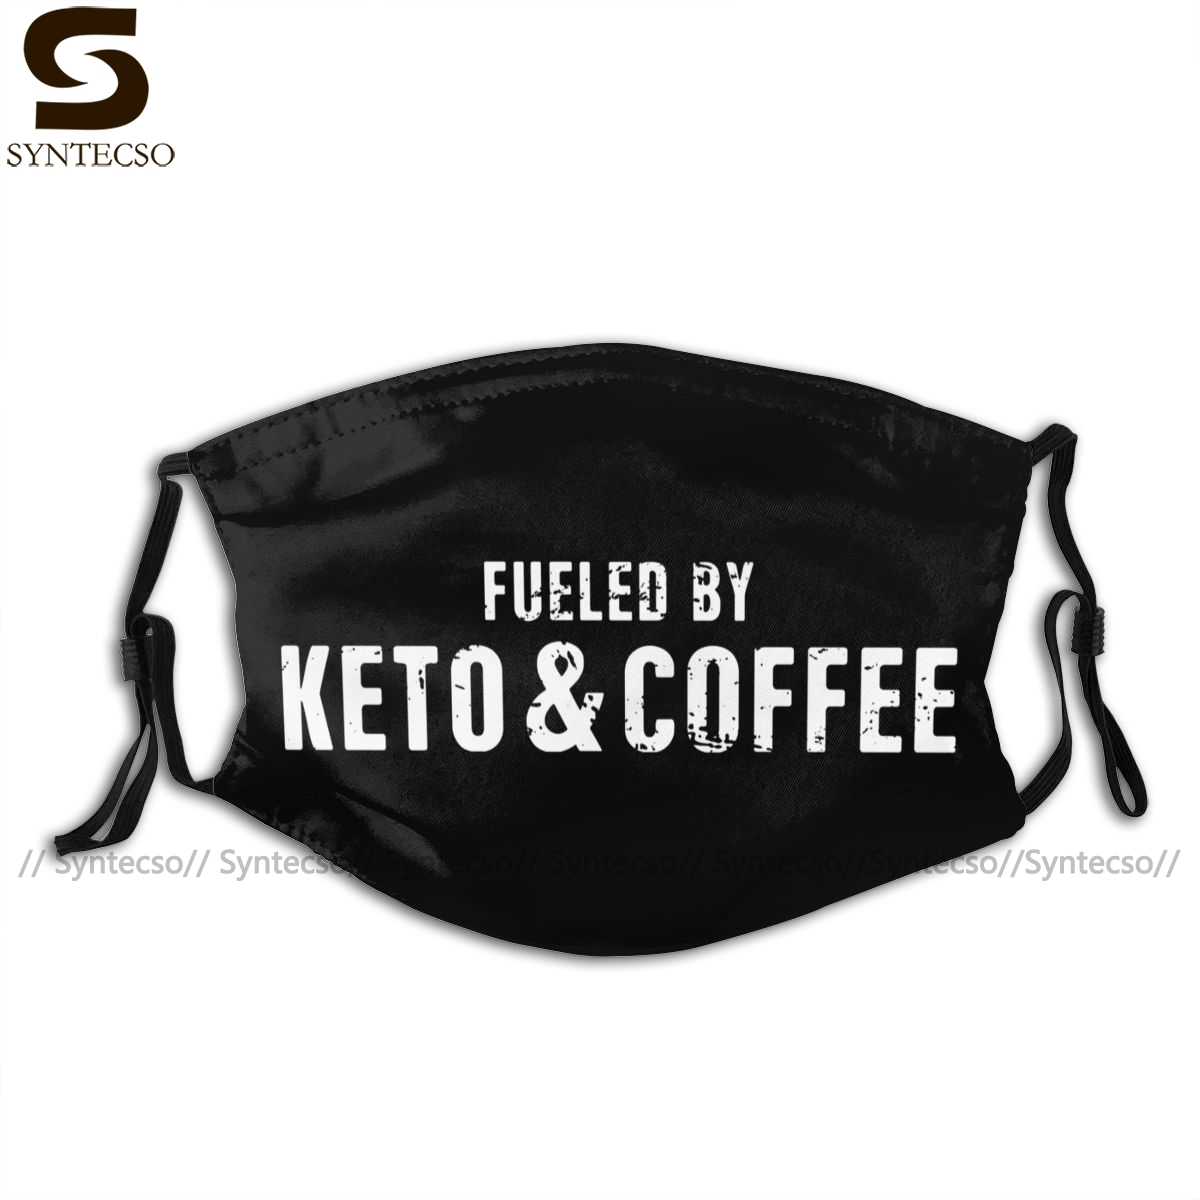 Low Carb Mouth Face Mask Fueled By Keto And Coffee Facial Mask Beautiful Polyester with 2 Filters Adult Mask